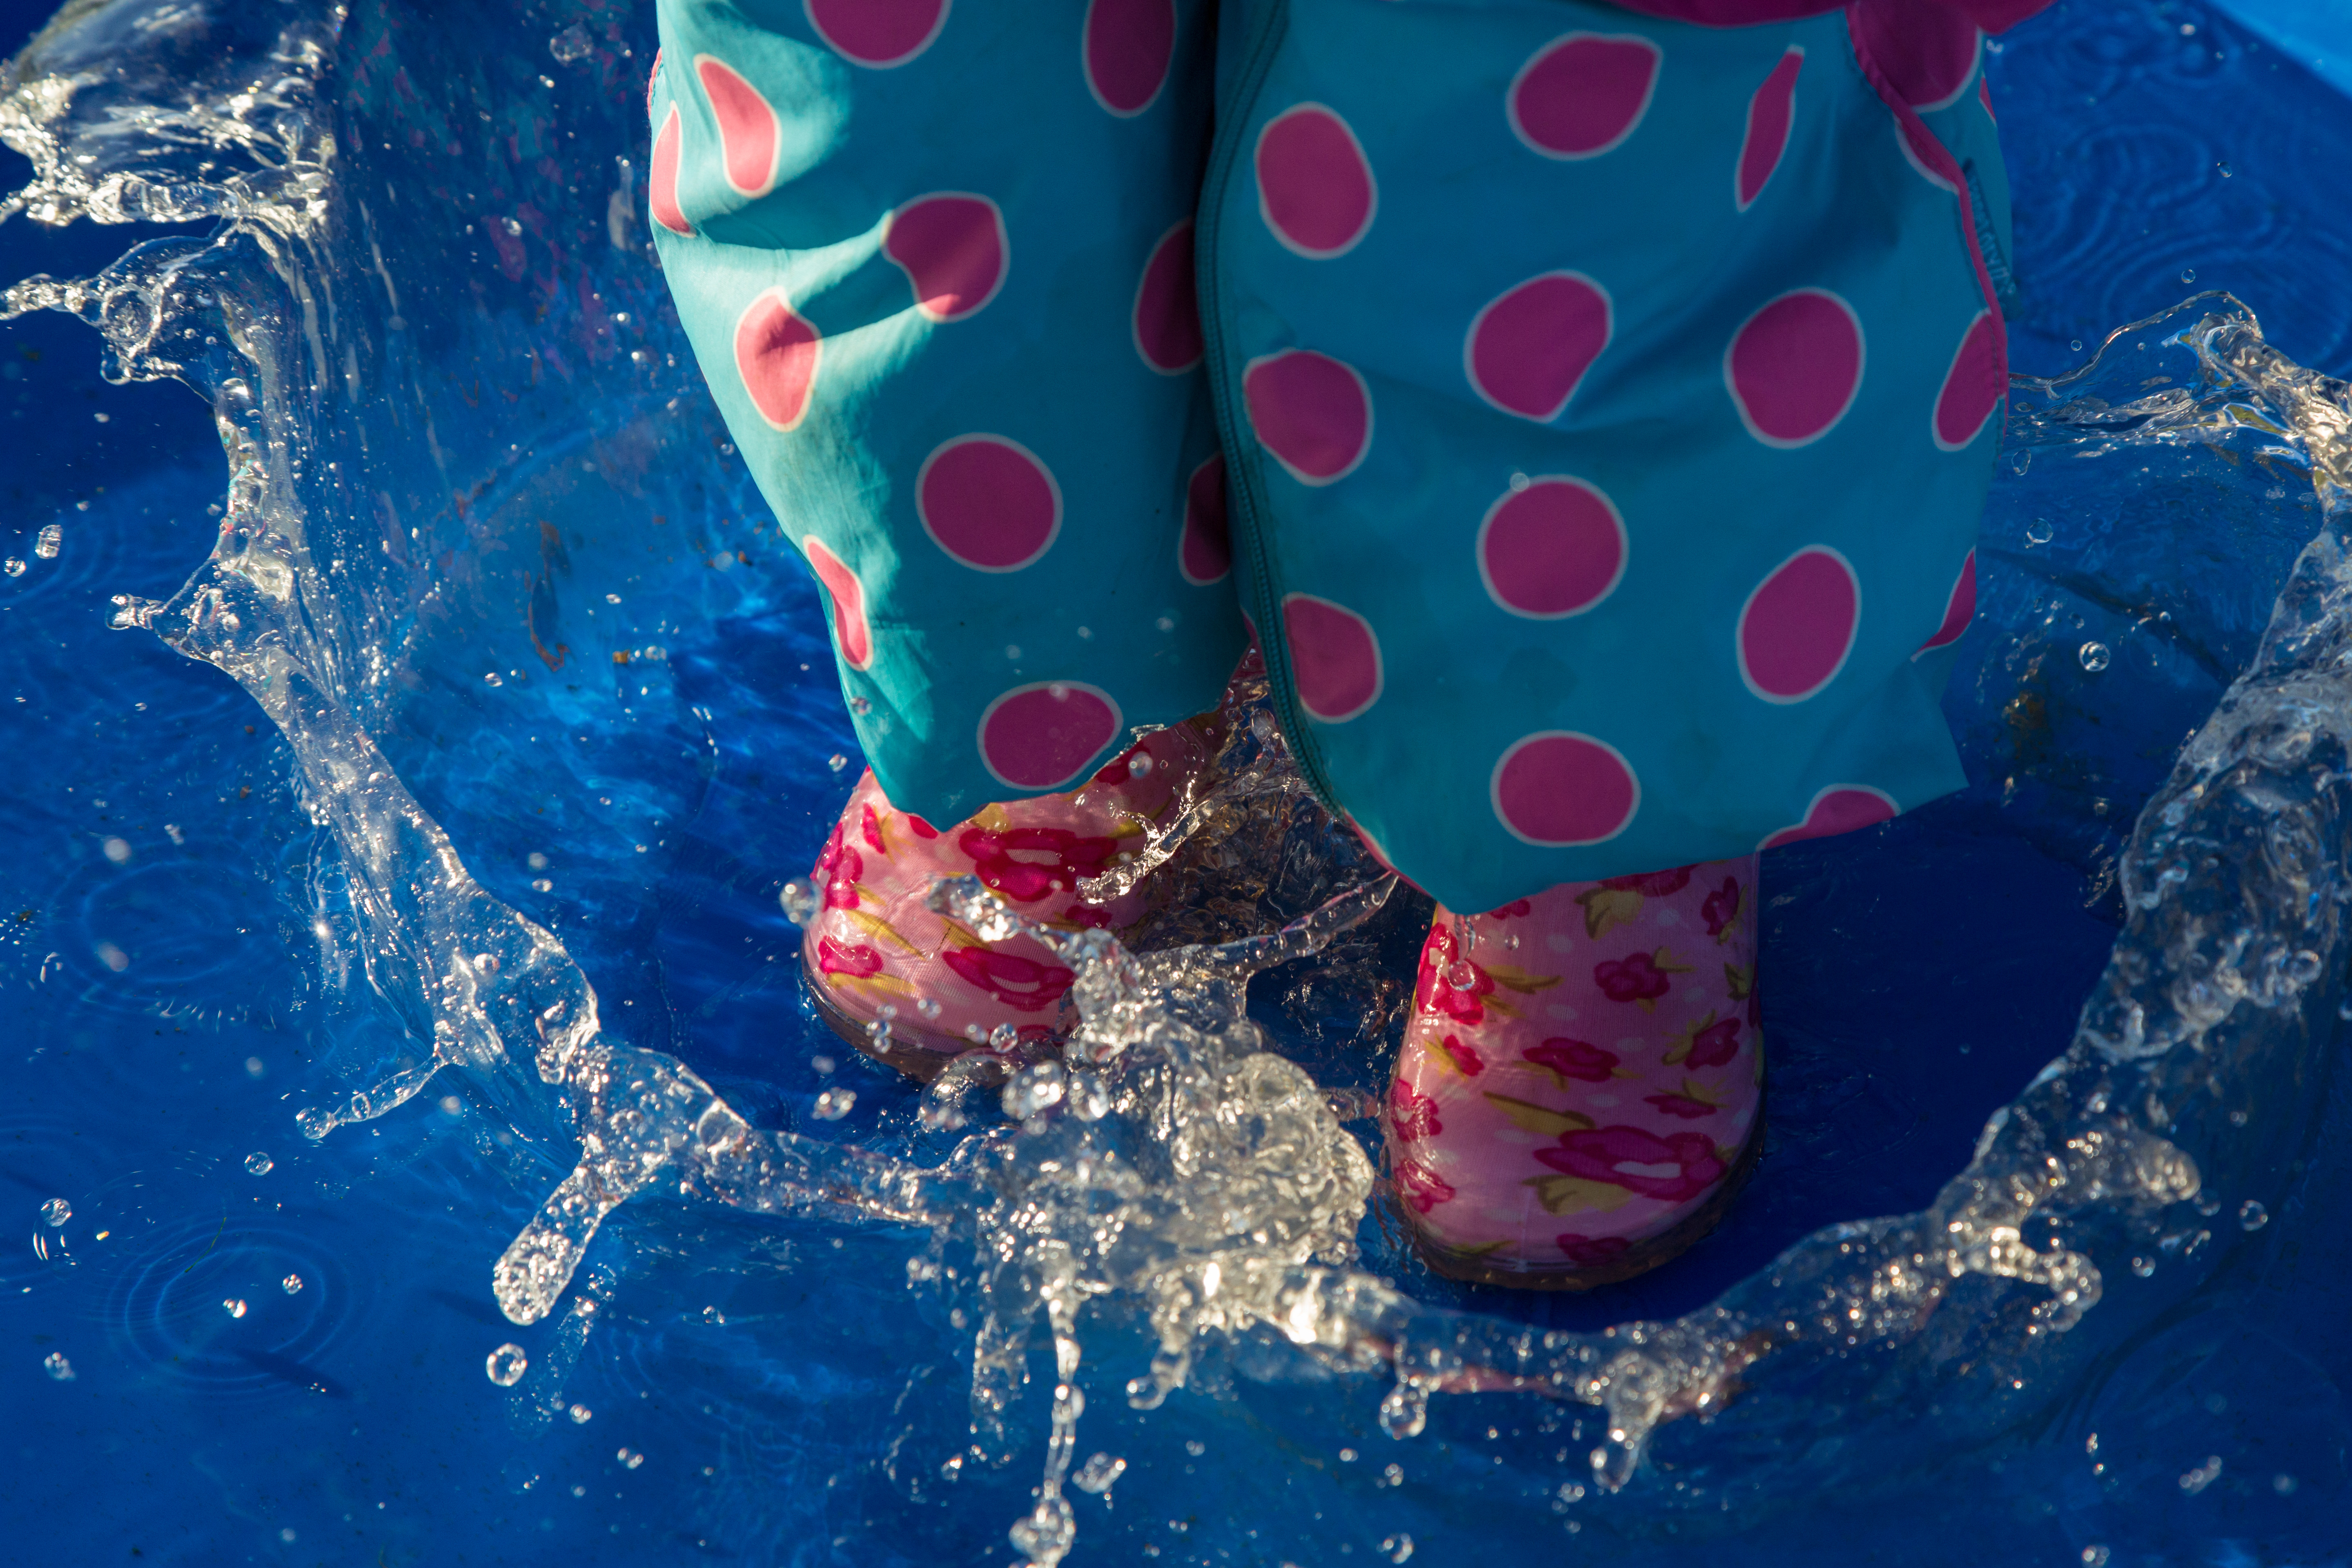 Have a splashing time February half term at the London Puddle Jumping Championships